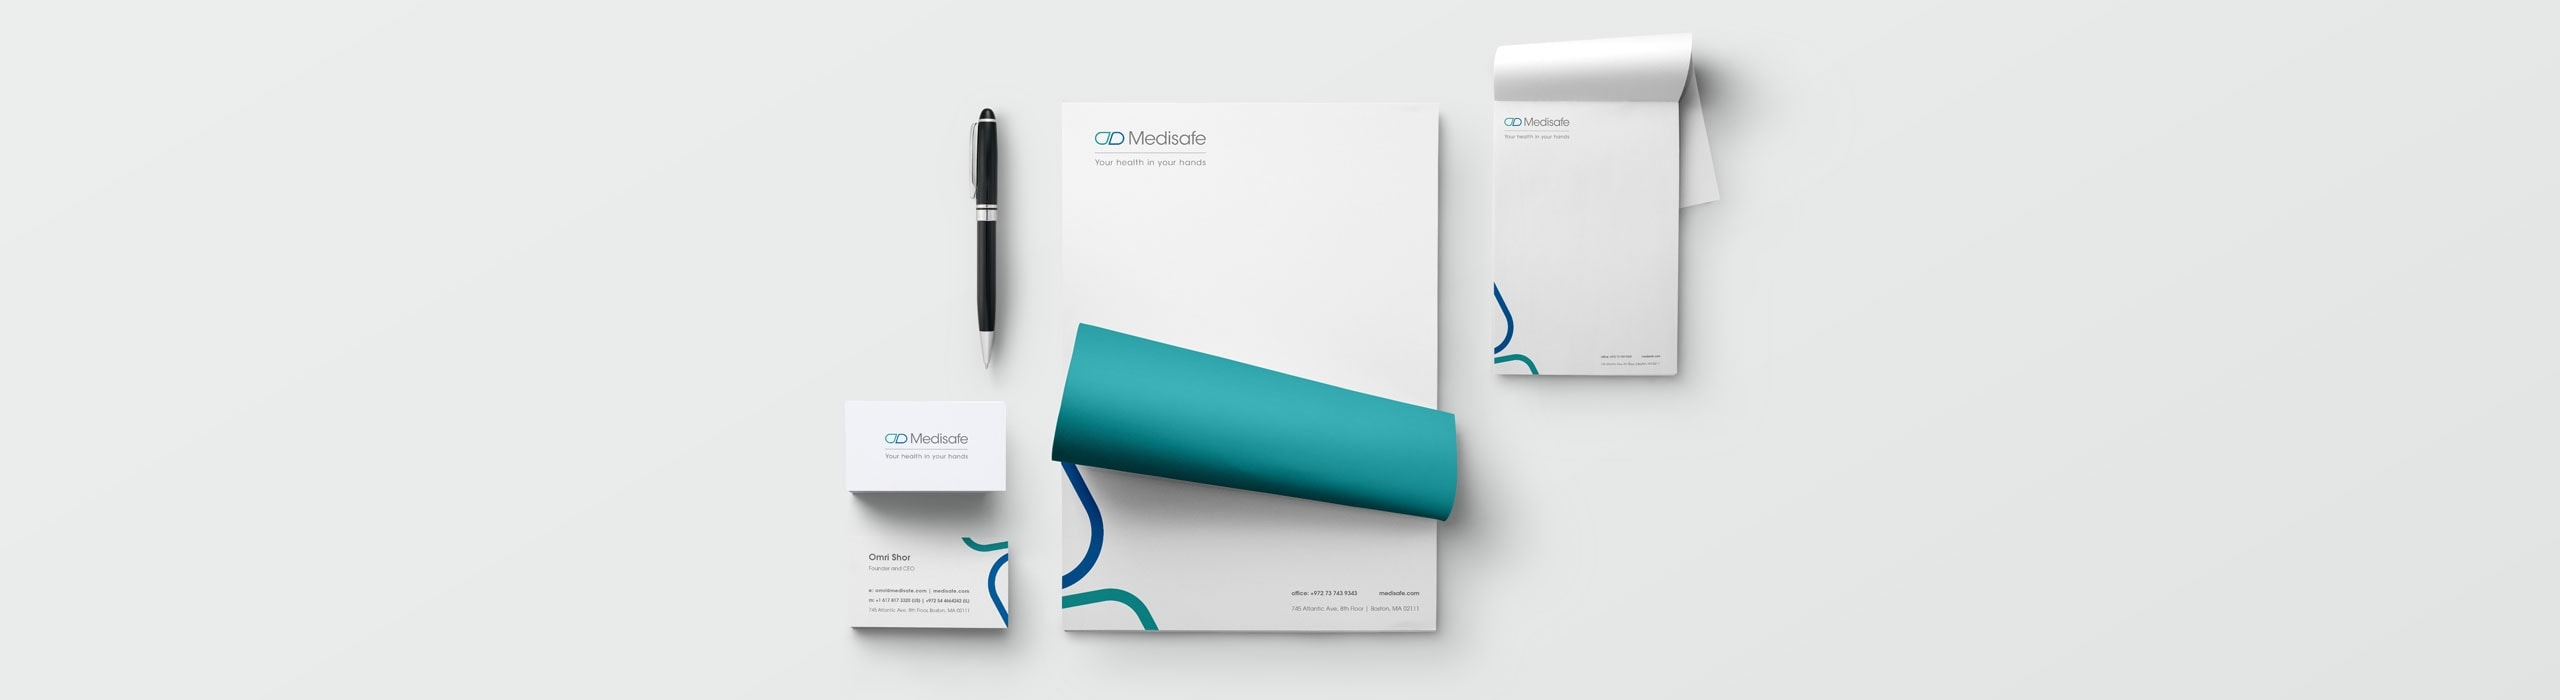 Medisafe - natie-medisafe-stationary-design - Natie Branding Agency